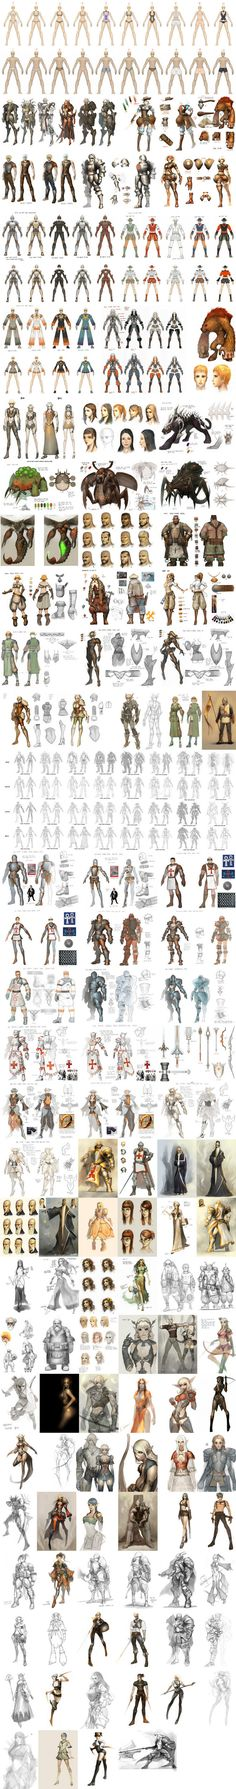 Character Design Fashion Clothing Clothes Armor Chart Create Your Own Roleplaying Game Material W Rp Character Design Cartoon, Character Design References, Character Design Inspiration, Writing Inspiration, Character Creation, Character Concept, Character Art, Concept Art, Fantasy Artwork